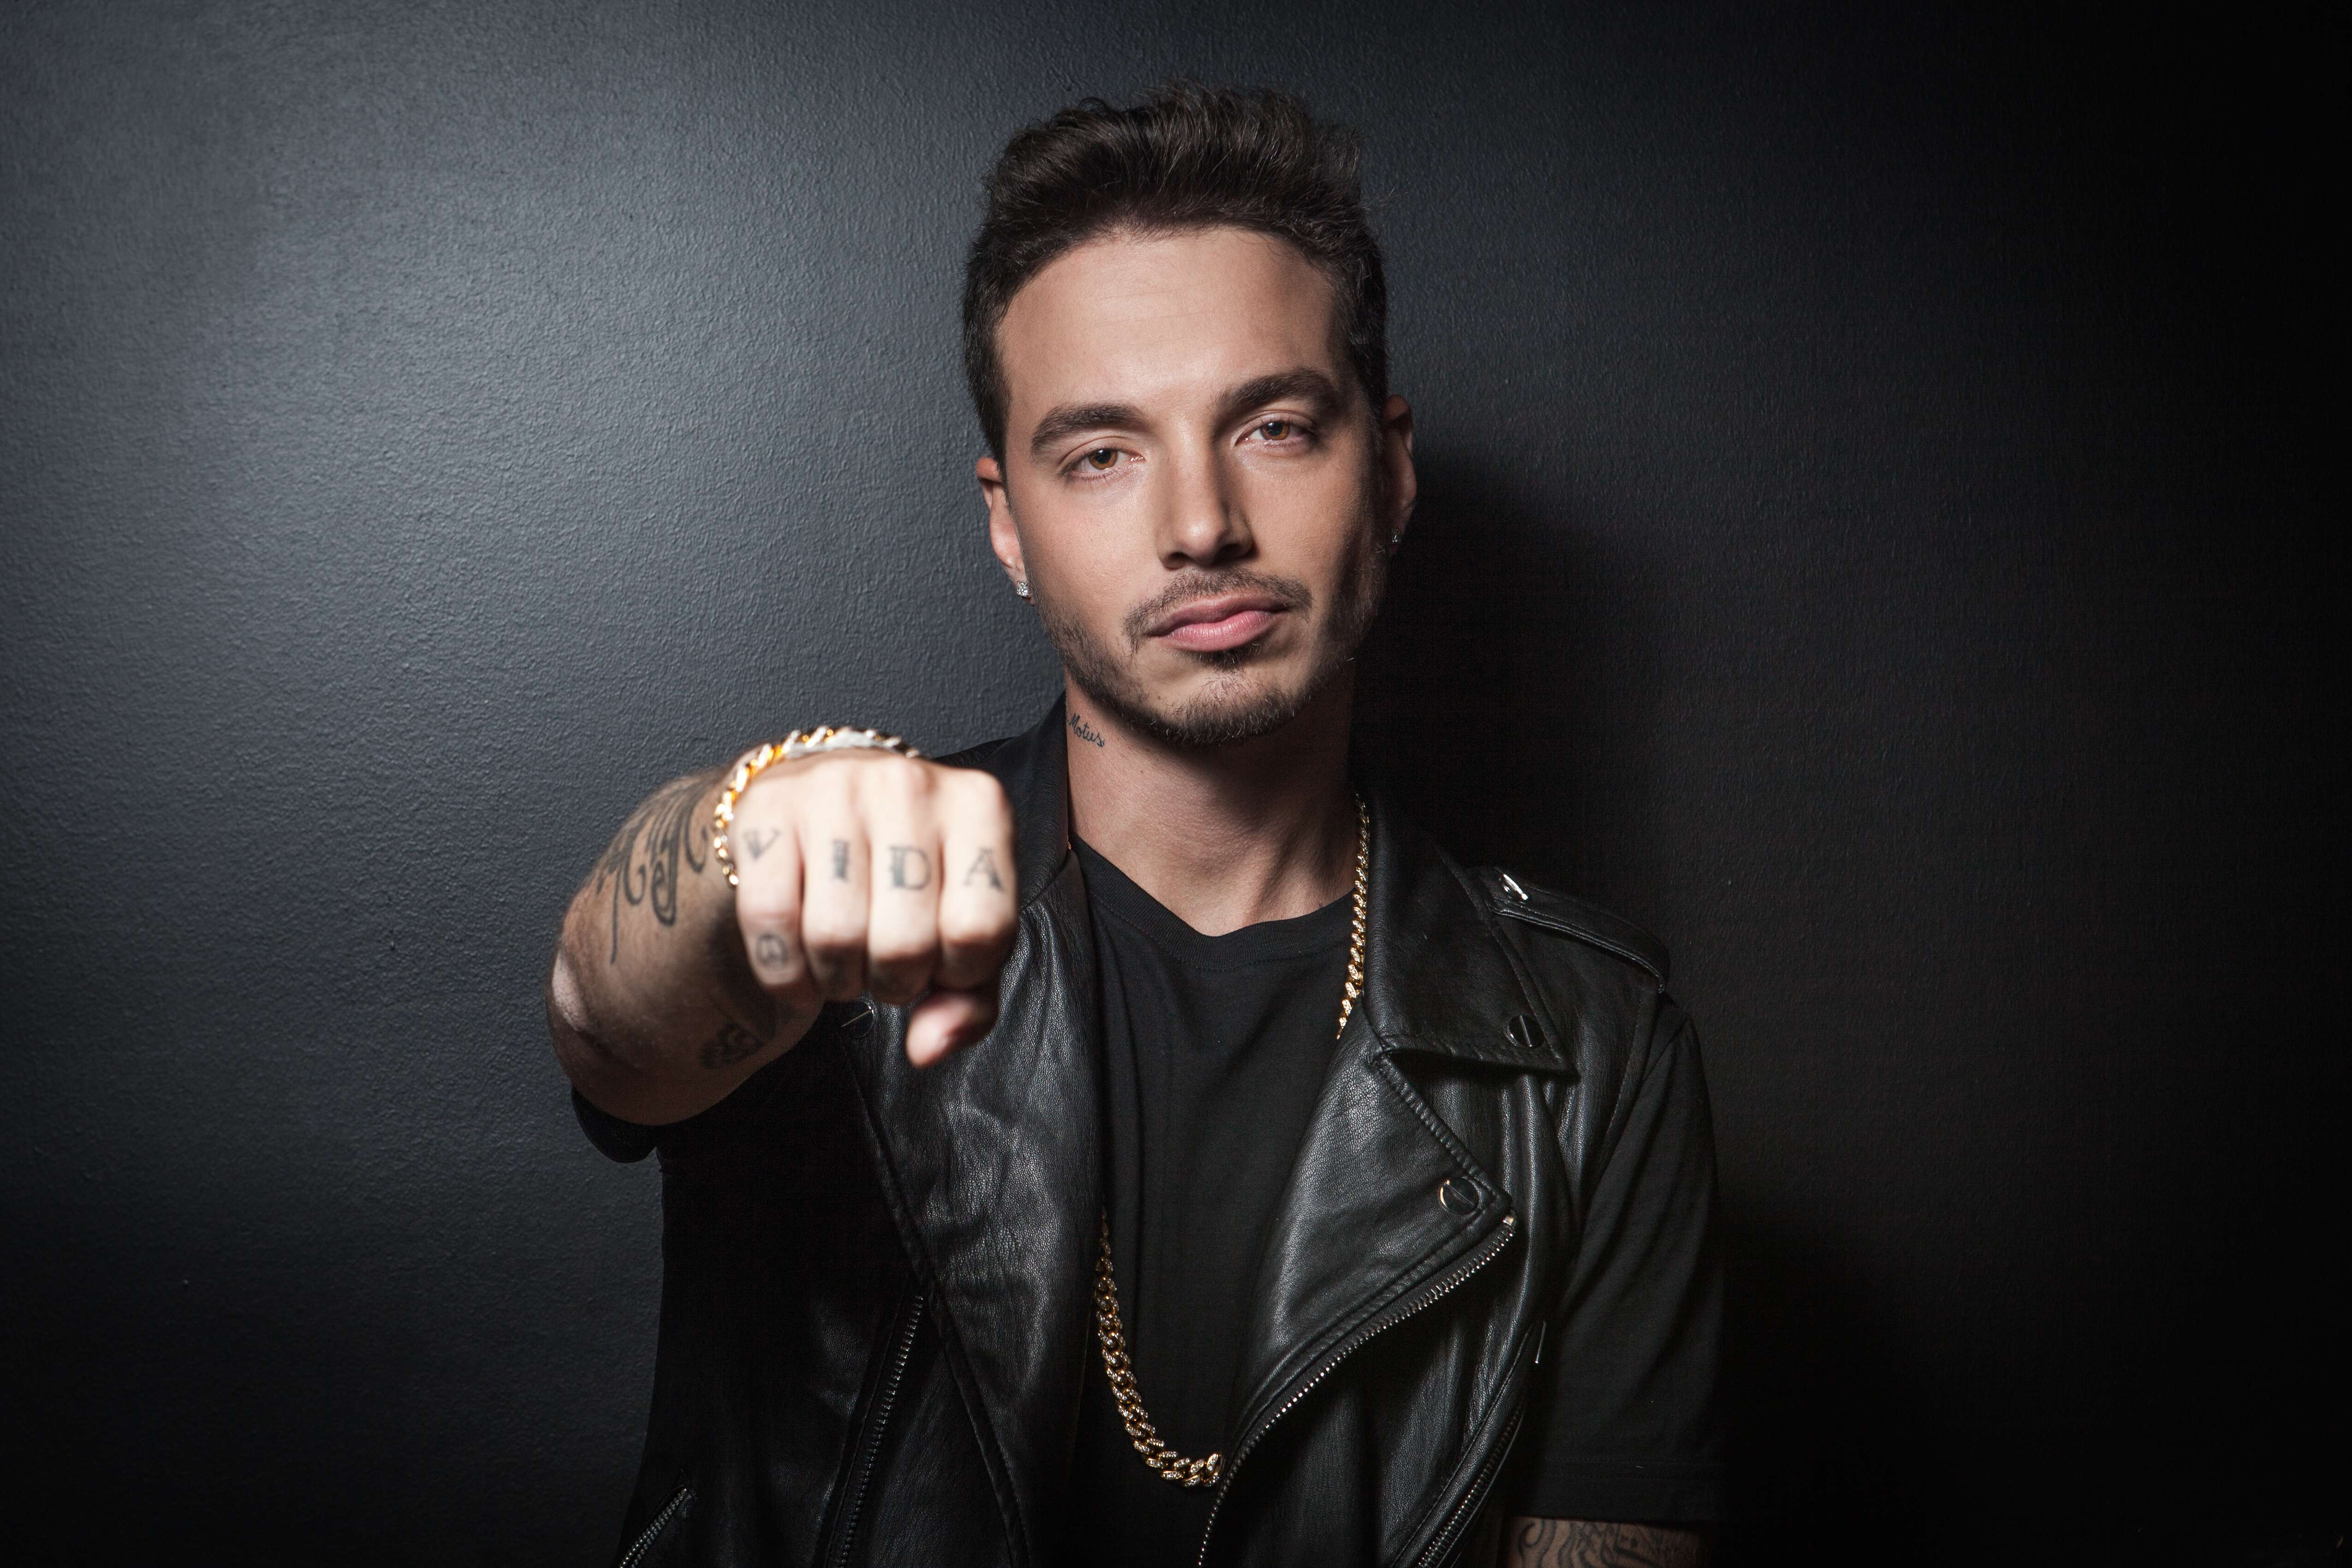 The 33-year old son of father (?) and mother(?) J Balvin in 2019 photo. J Balvin earned a  million dollar salary - leaving the net worth at 12 million in 2019